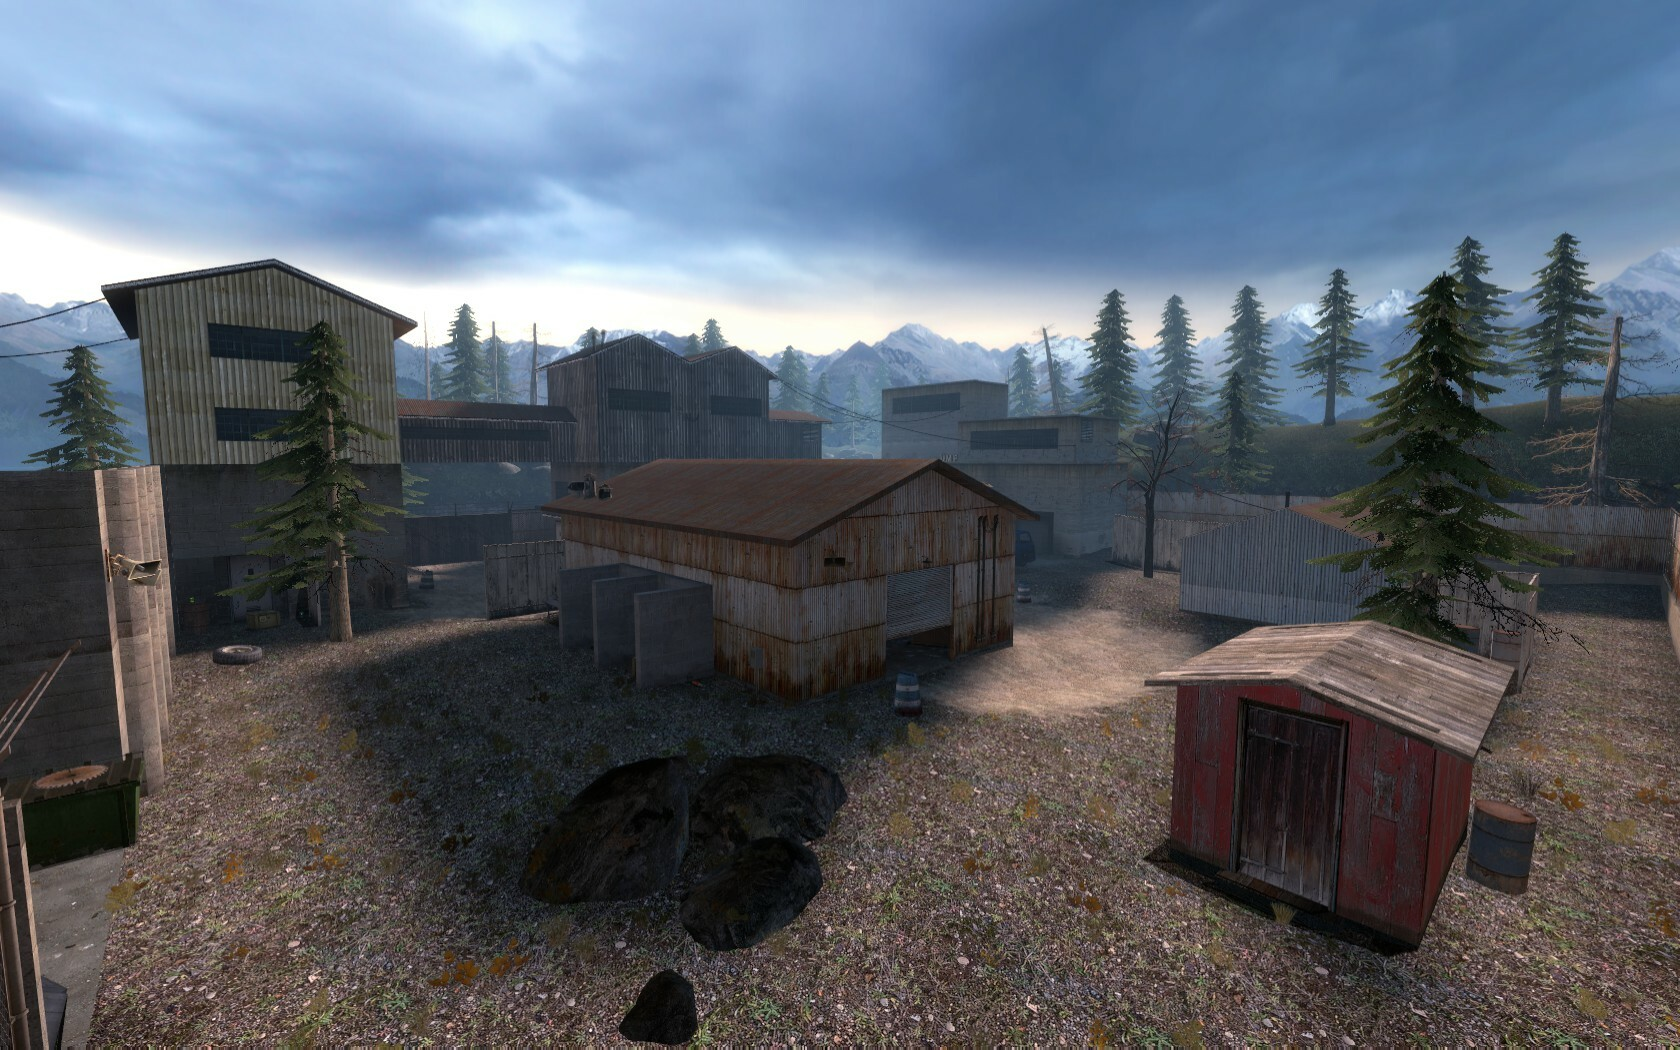 The final battle was an open area. There are a few buildings that the player can enter to take cover from the enemies. These are spread around to encourage the player to move from building to building.